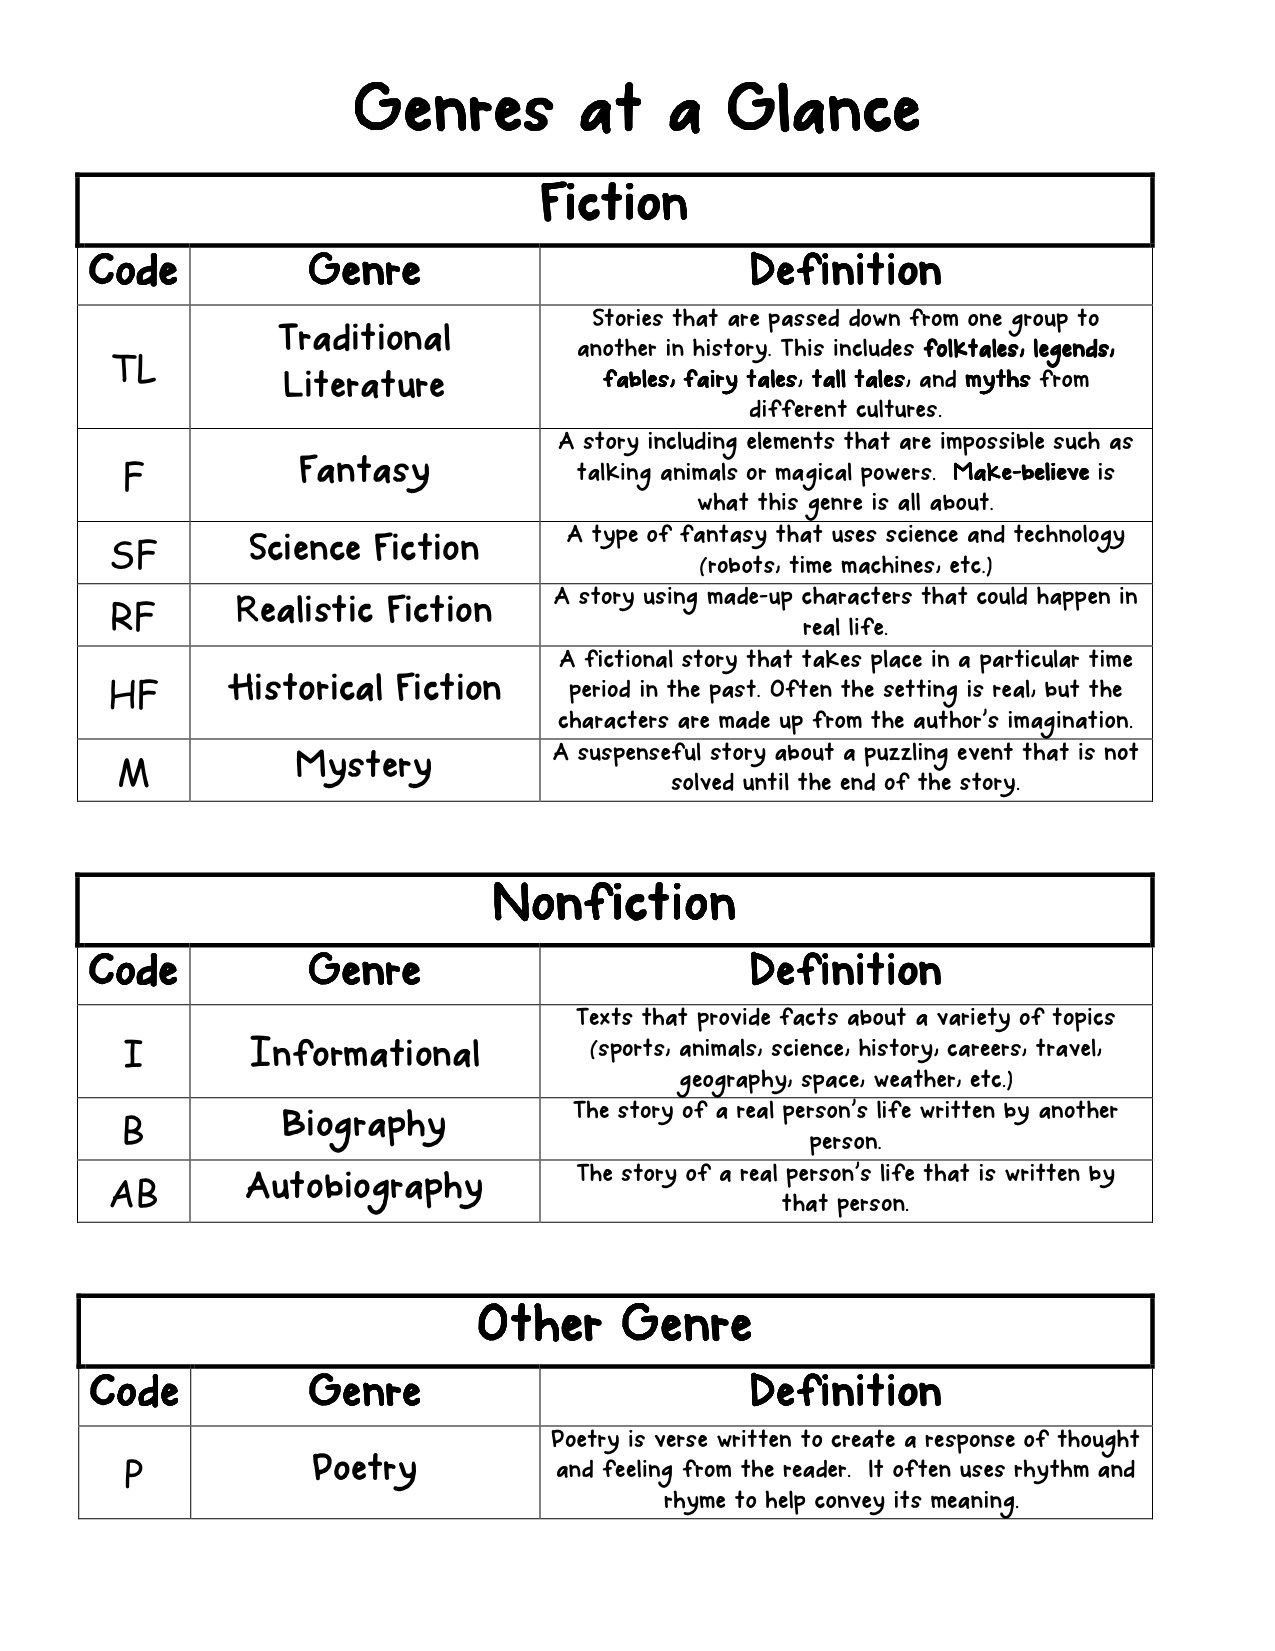 Genre Worksheet 3rd Grade Genres at A Glance for Reader S Notebook   40  book challenge [ 1651 x 1275 Pixel ]